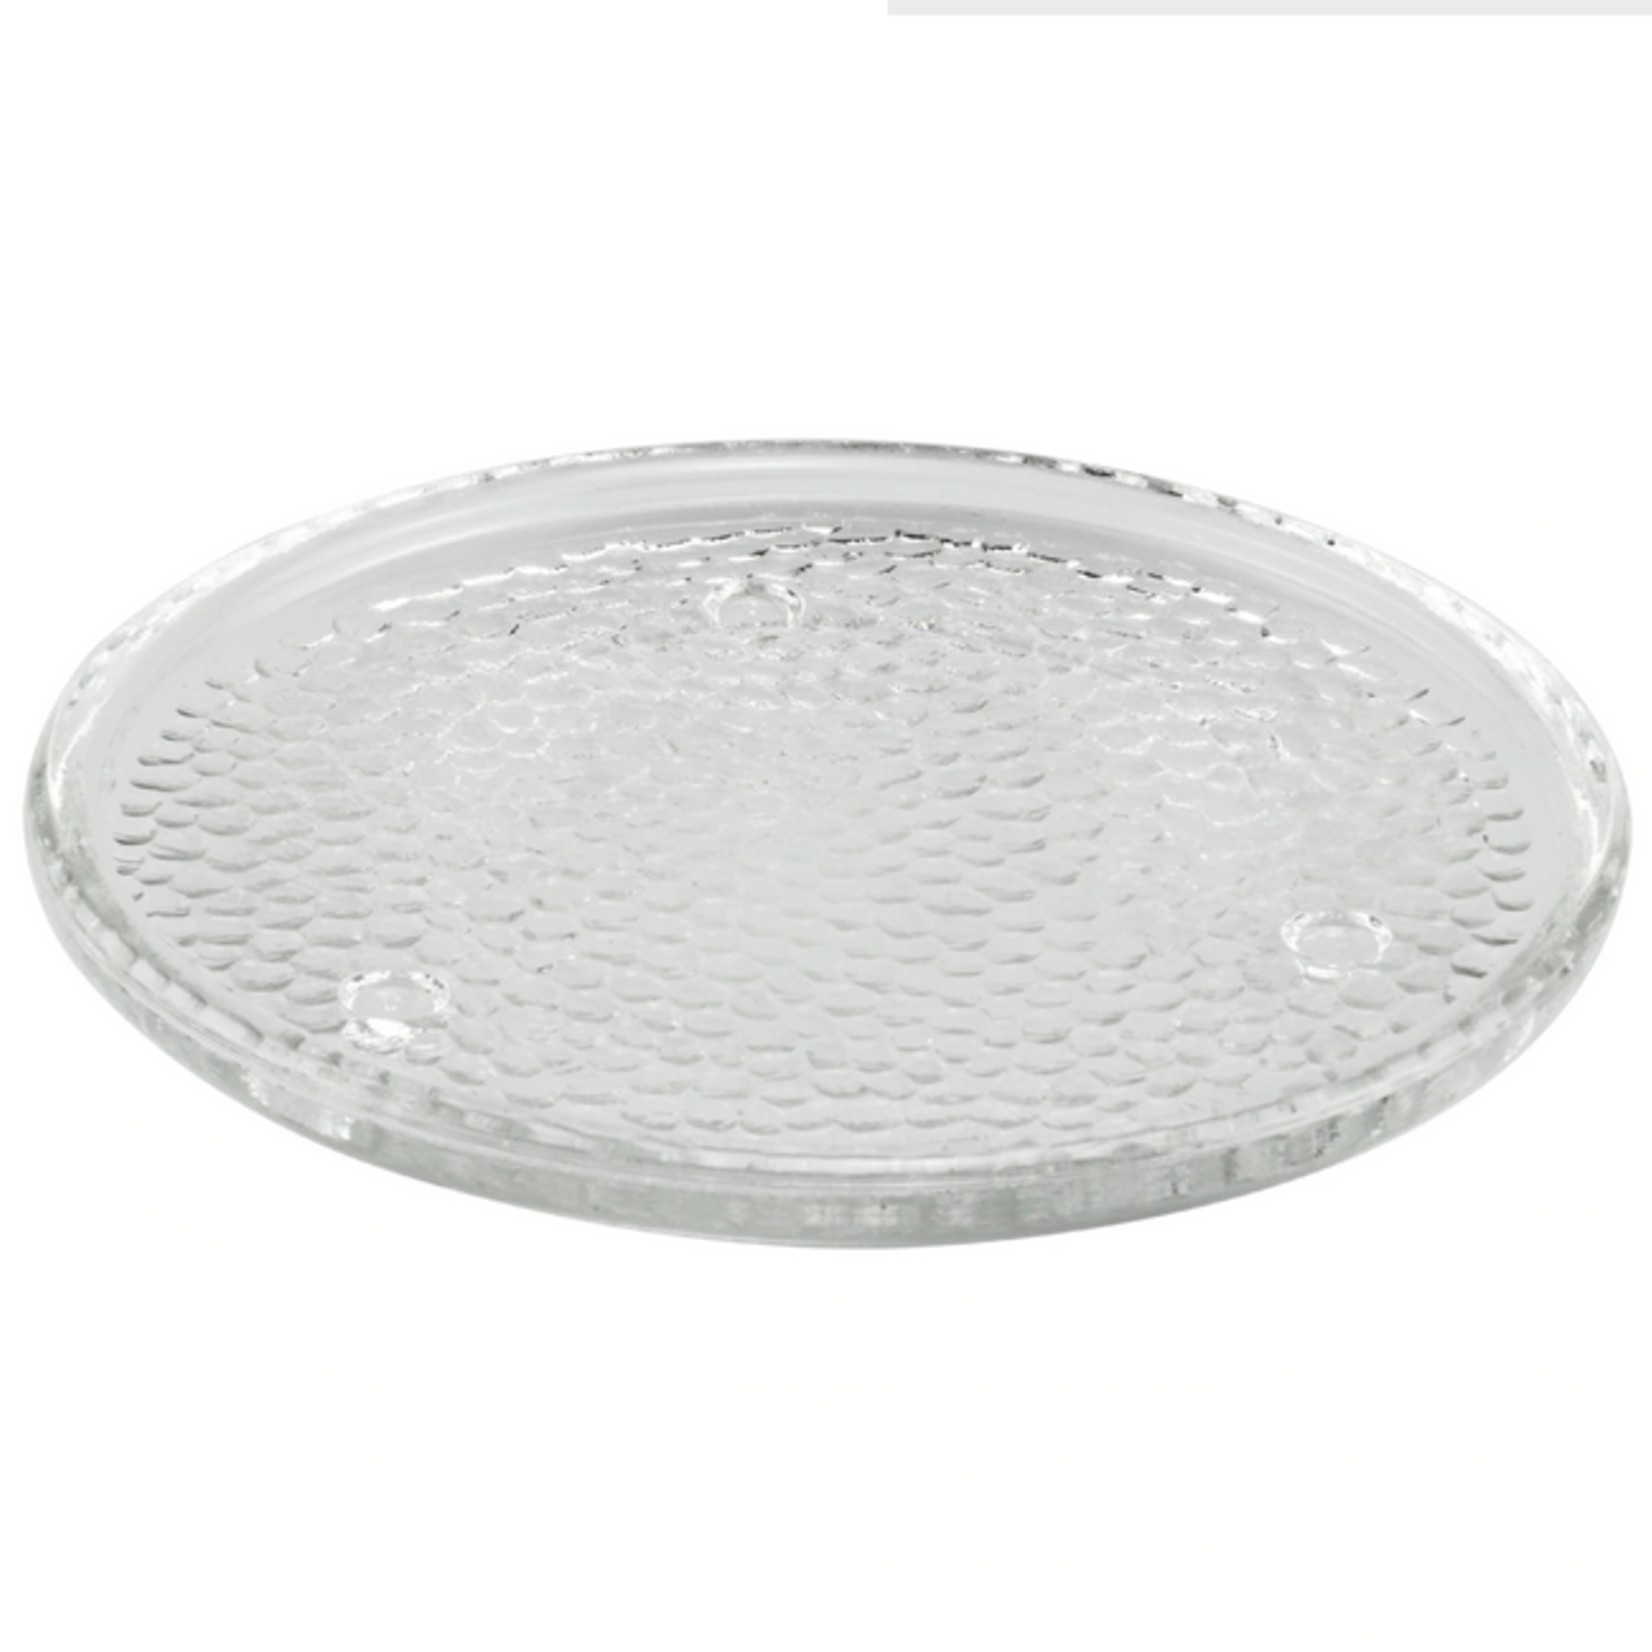 Glass candle Holder Plate